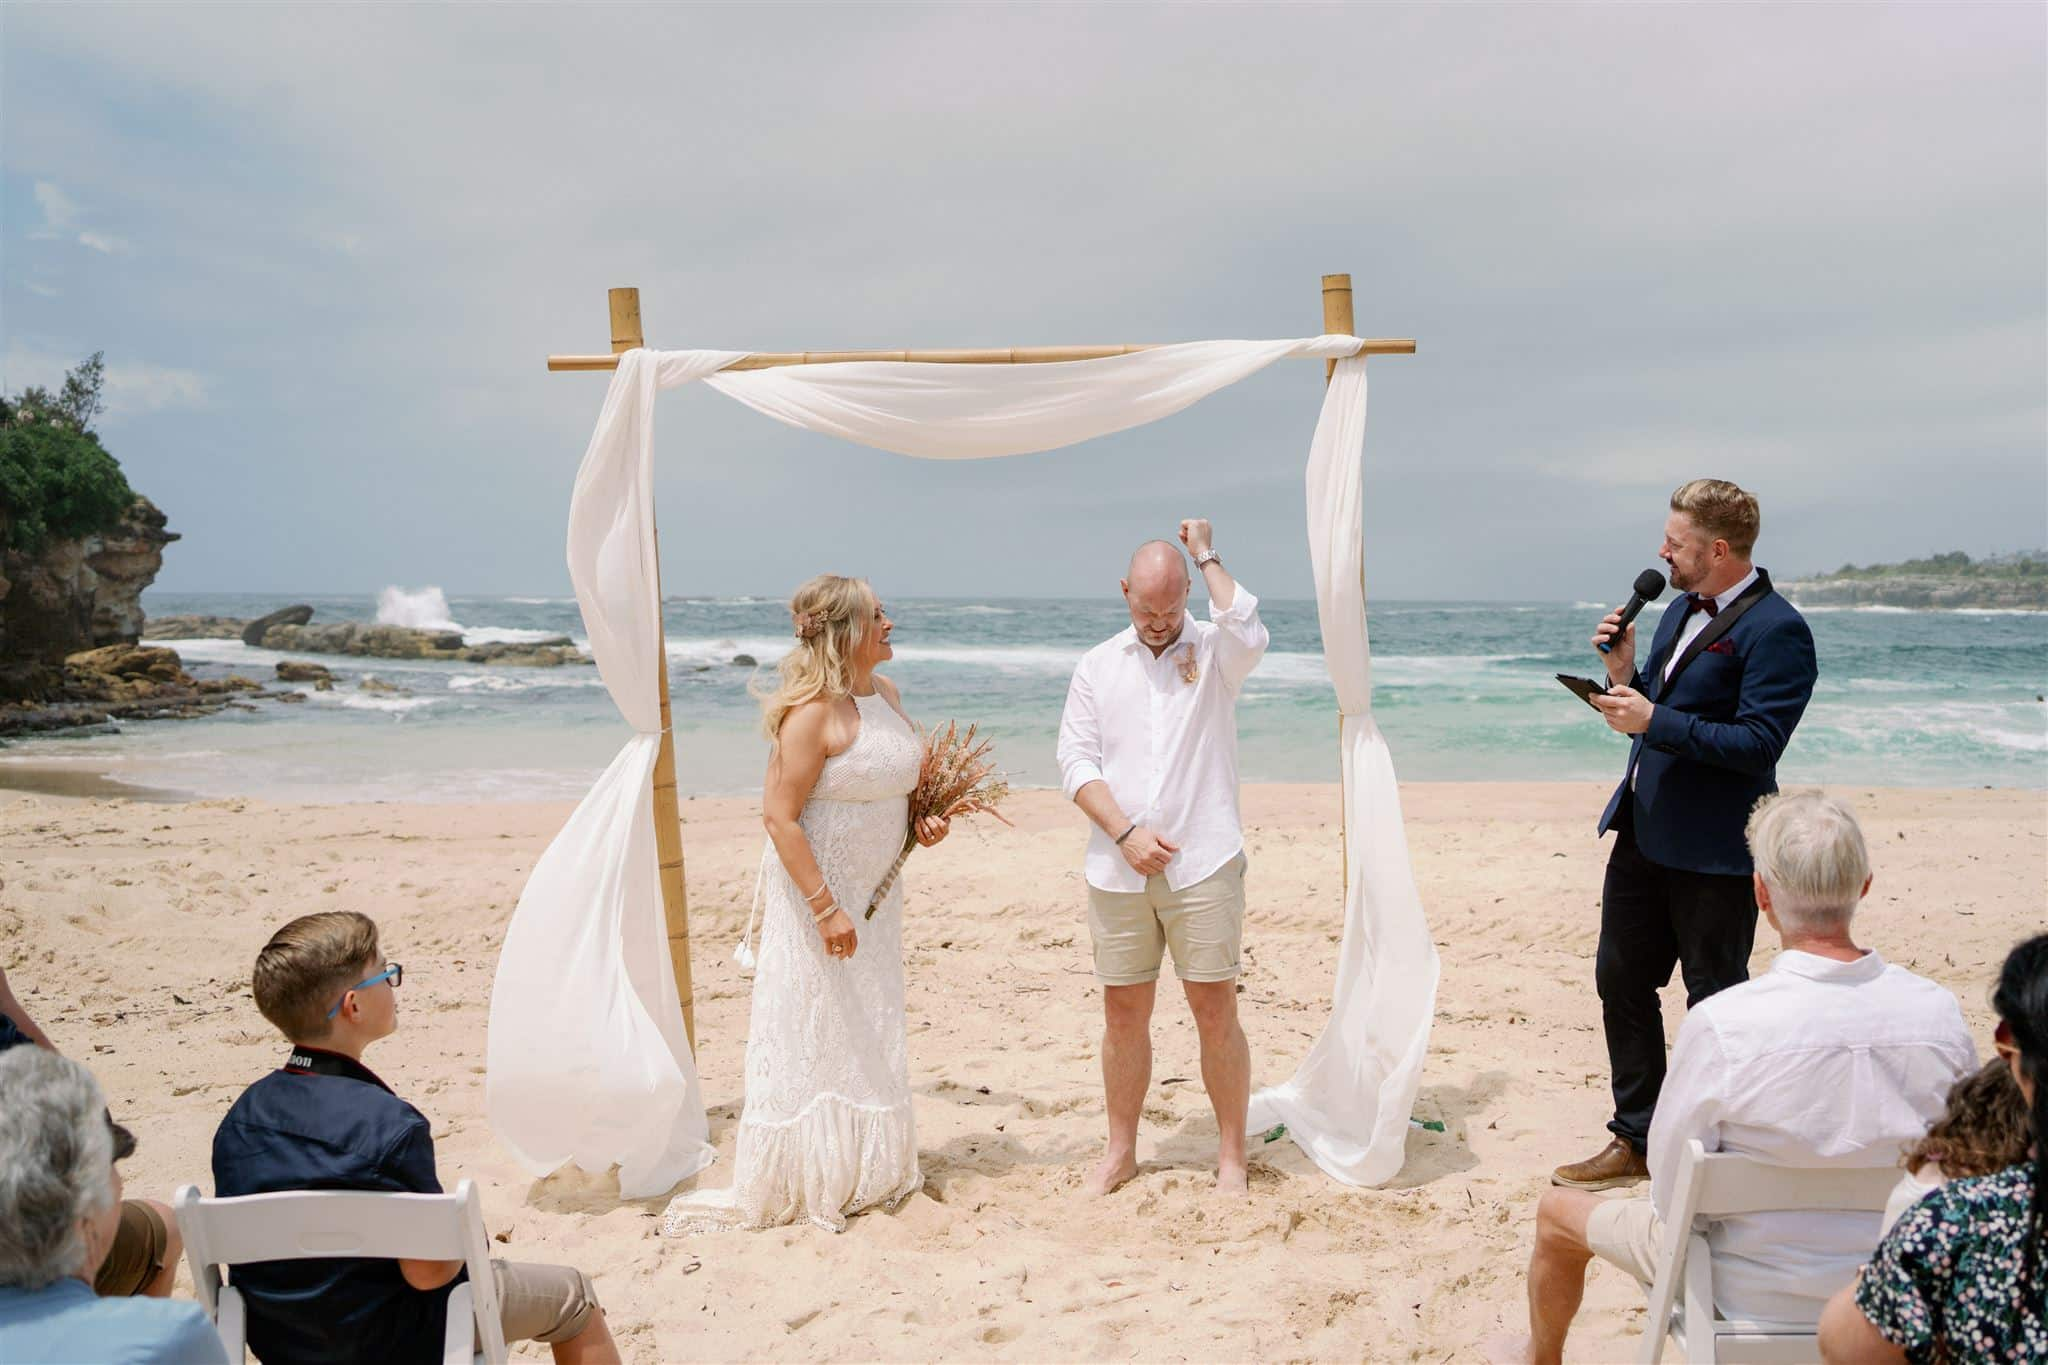 Coogee Beach Wedding - Sydney Marriage Celebrant Stephen Lee